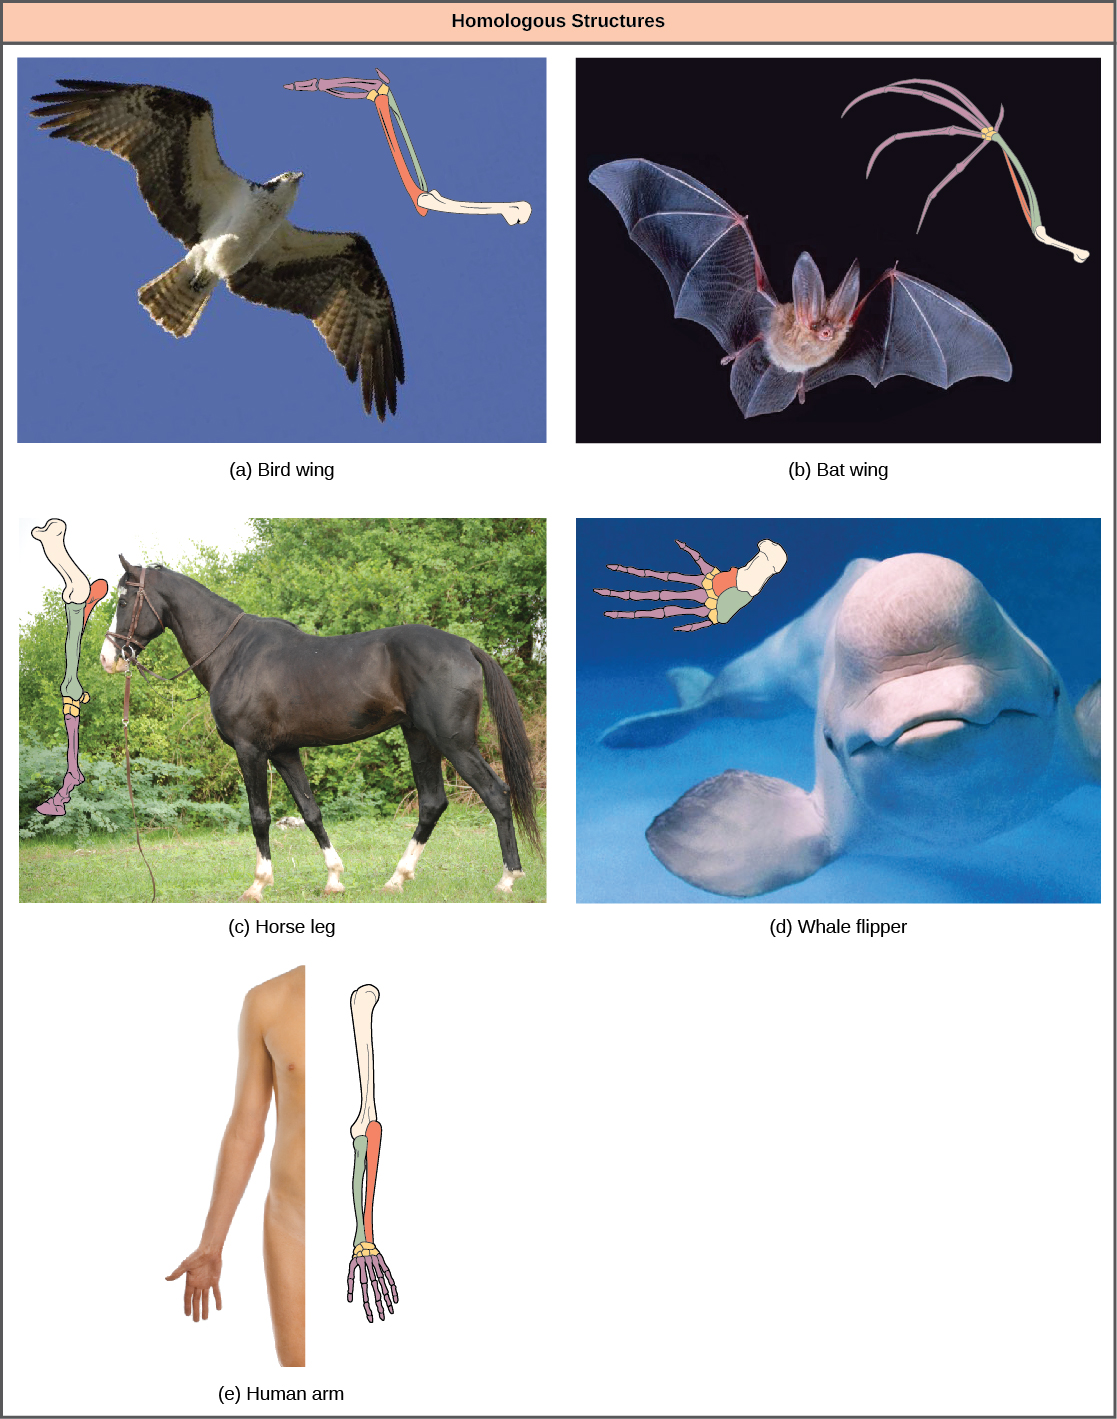 Photo A shows a bird in flight, with a corresponding drawing of bird wing bones. Photo B shows a bat in flight with a corresponding drawing of bat wing bones. Photo C shows a horse, with a corresponding drawing of front leg bones. Photo D shows a beluga whale, with a corresponding drawing of flipper bones. Photo E shows a human arm, with a corresponding drawing of arm bones. All the limbs share common bones, analogous to the bones in the arms and fingers of humans. However, in the bat wing, finger bones are long and separate and form a scaffolding on which the wing's membrane is stretched. In the bird wing, the finger bones are fused together. In the horse leg, the ulna is shortened and is fused to the radius. The hand bones are reduced to one long thick bone and the finger bones are reduced to one long thick finger with a modified nail or hoof. In the whale flipper, the humerus, ulna, and radius are very short and thick.